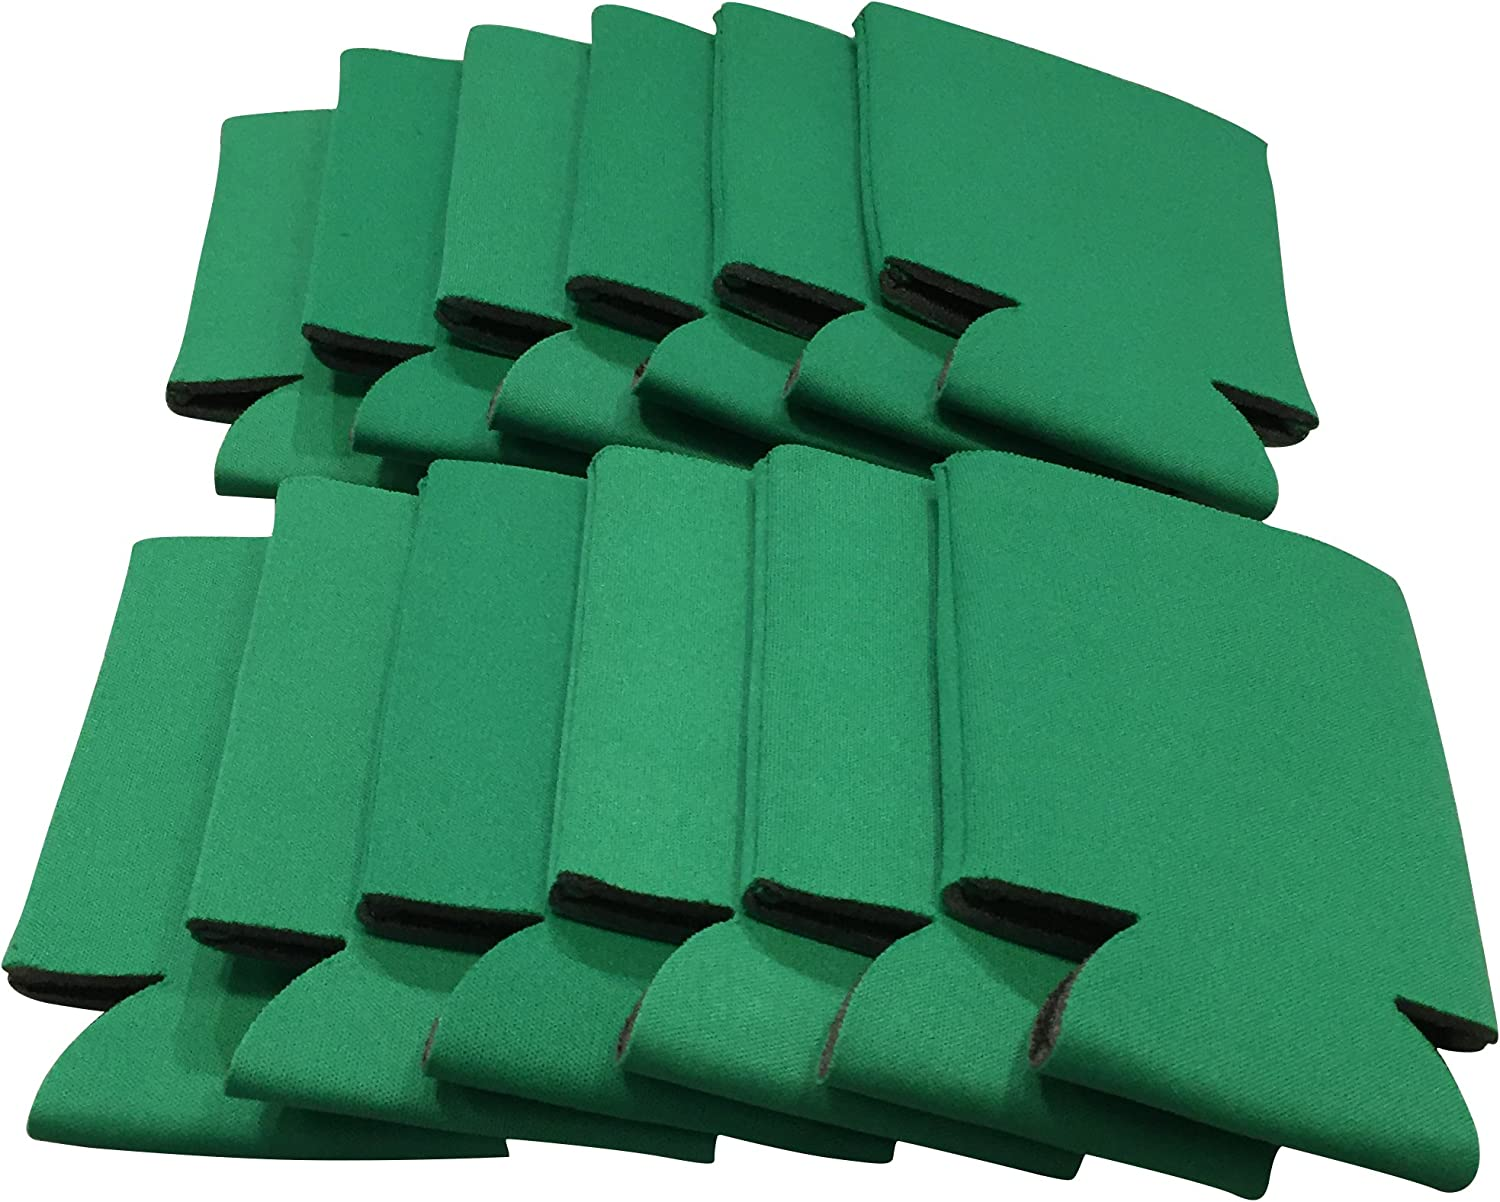 CSBD Beer Can Coolers Sleeves, Soft Insulated Reusable Drink Caddies for Water Bottles or Soda, Collapsible Blank DIY Customizable for Parties, Events or Weddings, Bulk 25 Pack (Green)